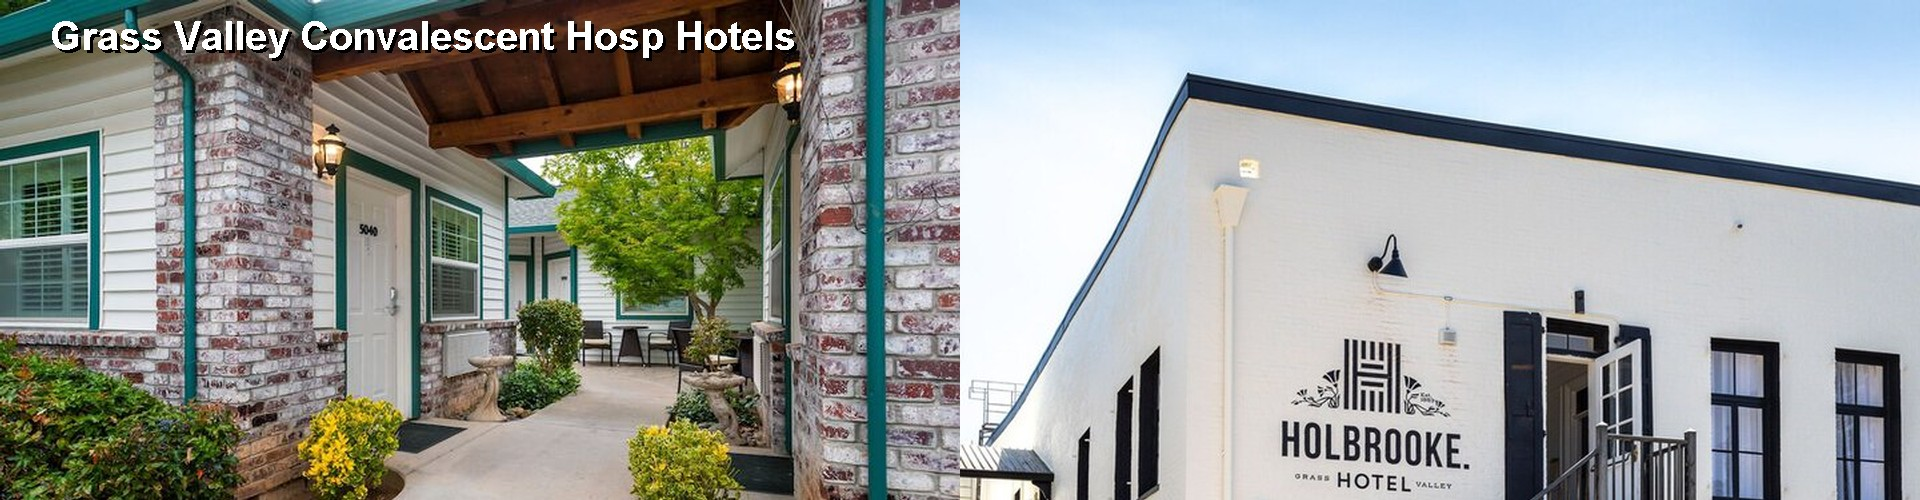 4 Best Hotels near Grass Valley Convalescent Hosp